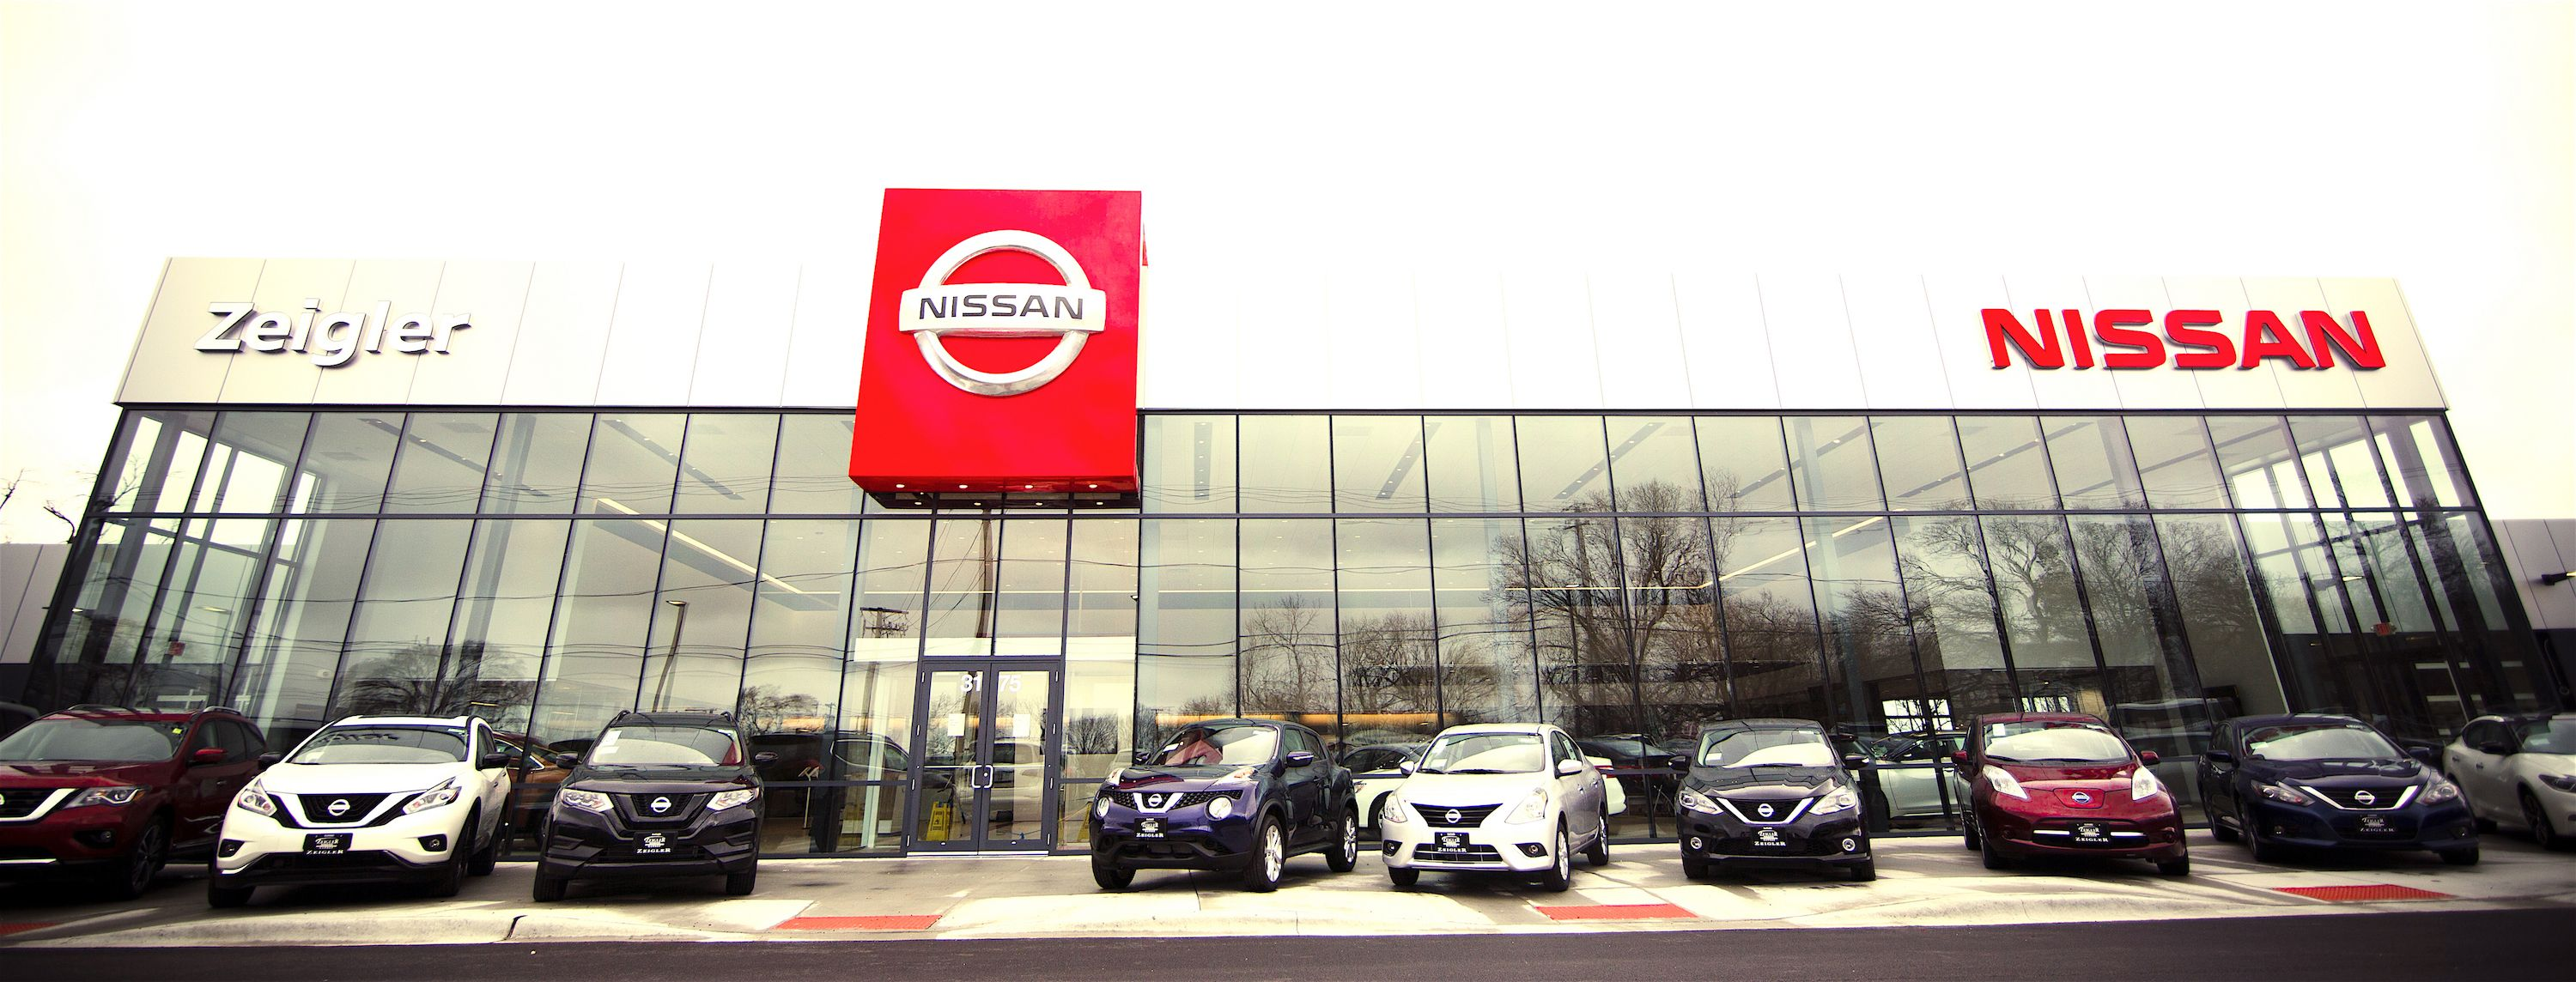 Zeigler Nissan Gurnee >> Motor'n | Nissan Opens First Purpose-Built Nissan 2.0 Store In US, Iconic Design On Display At ...